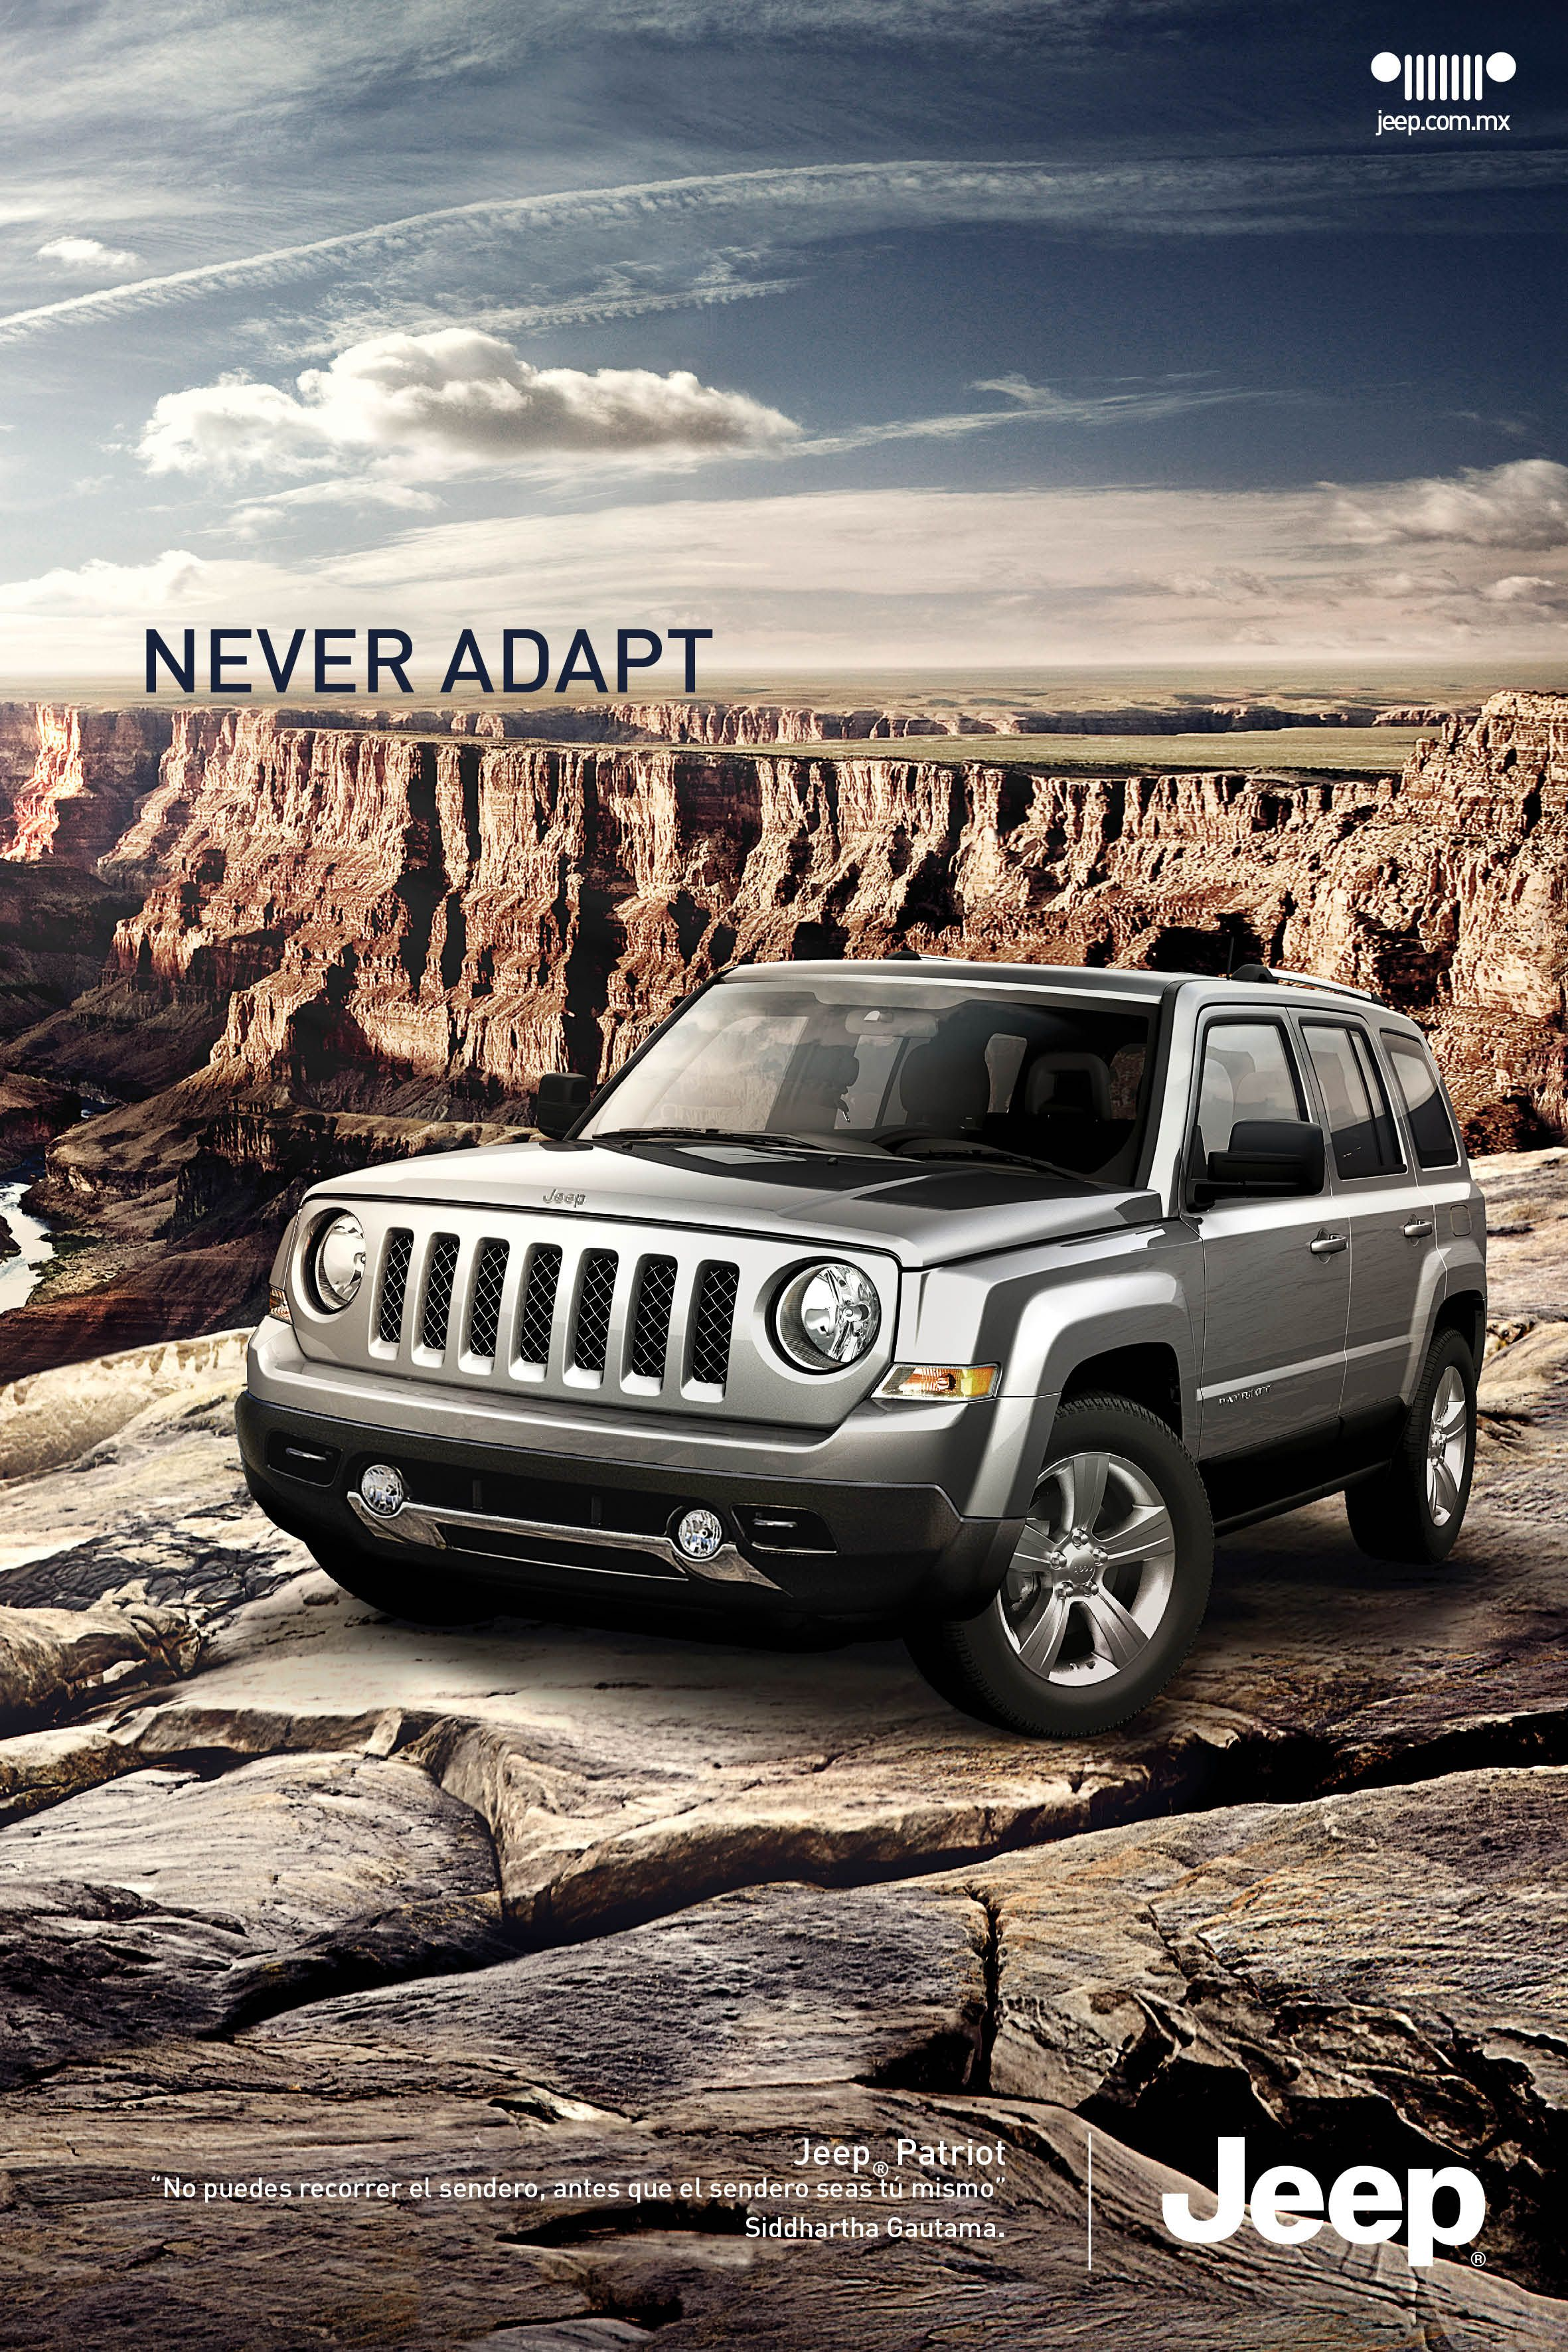 2013 Jeep Patriot Just Got Done Driving One And I M Thinking This